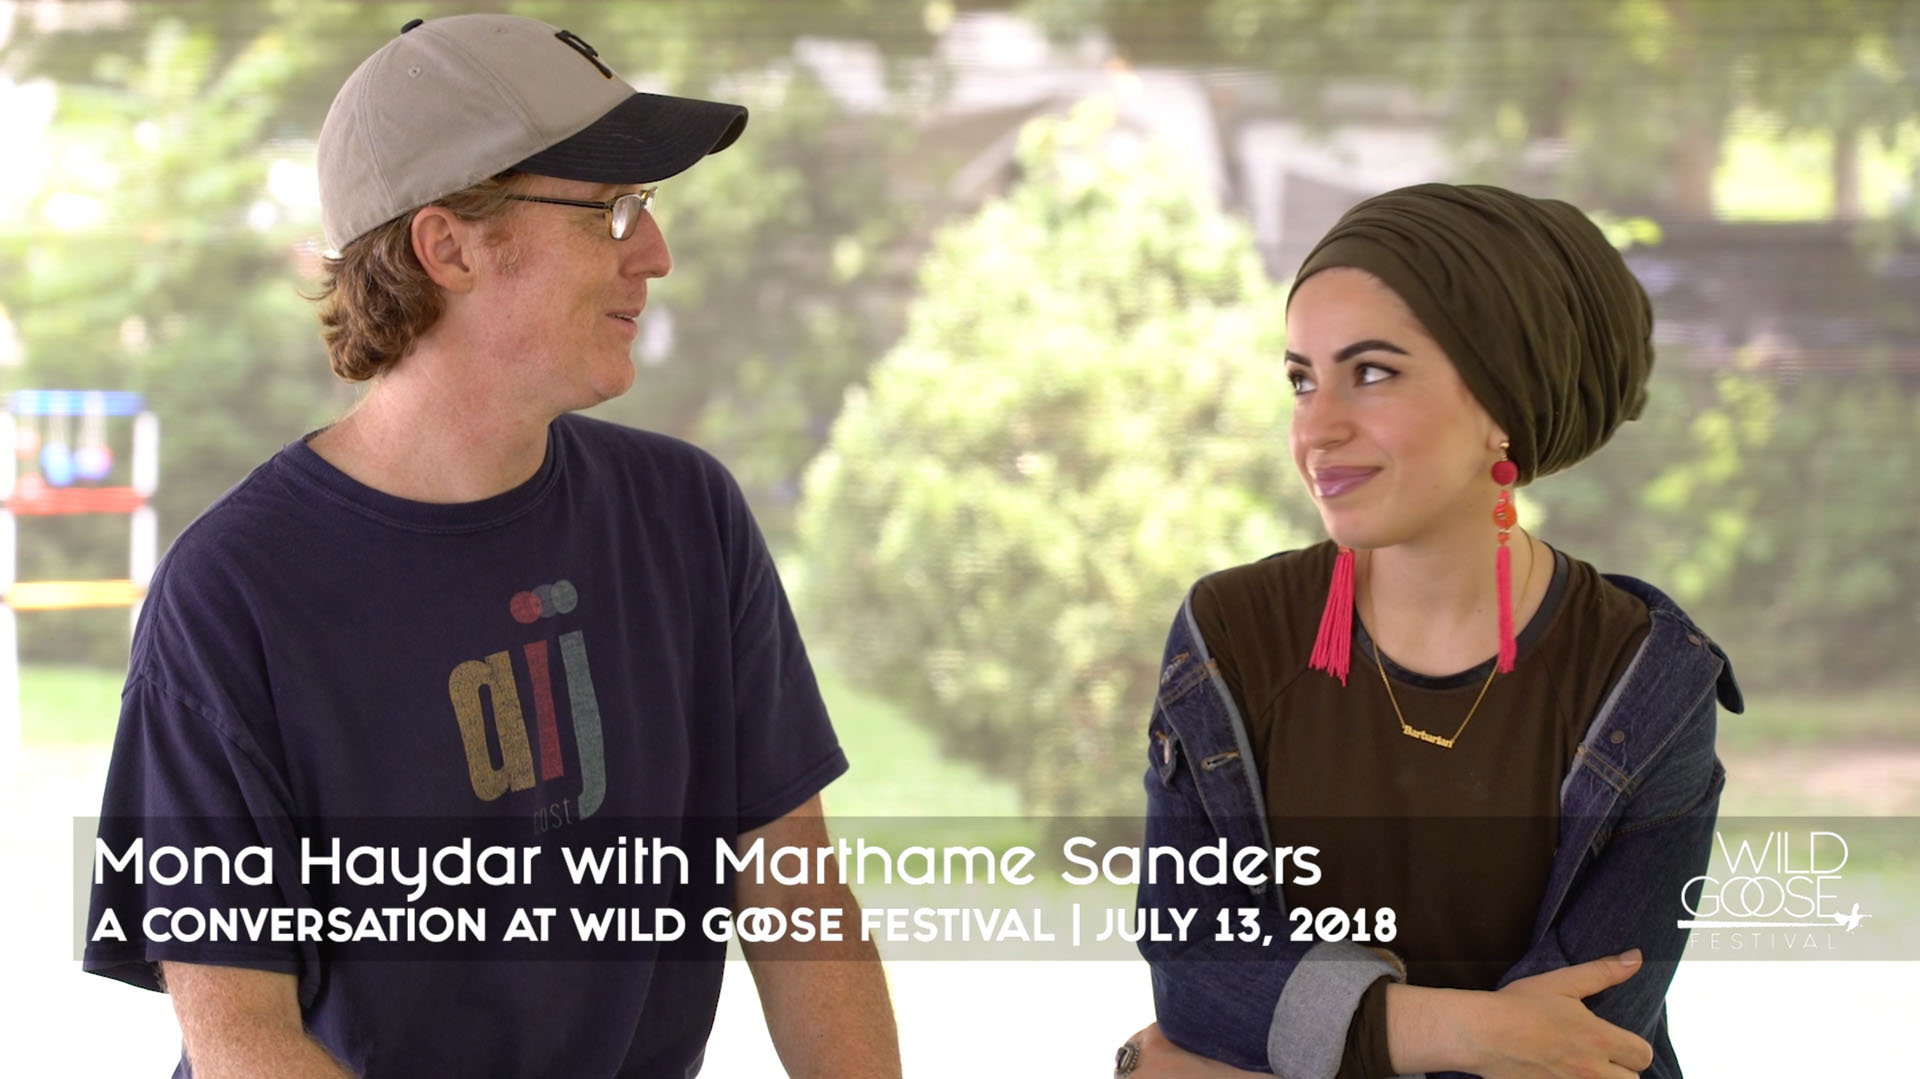 Mona Haydar Conversation with Marthame Sanders